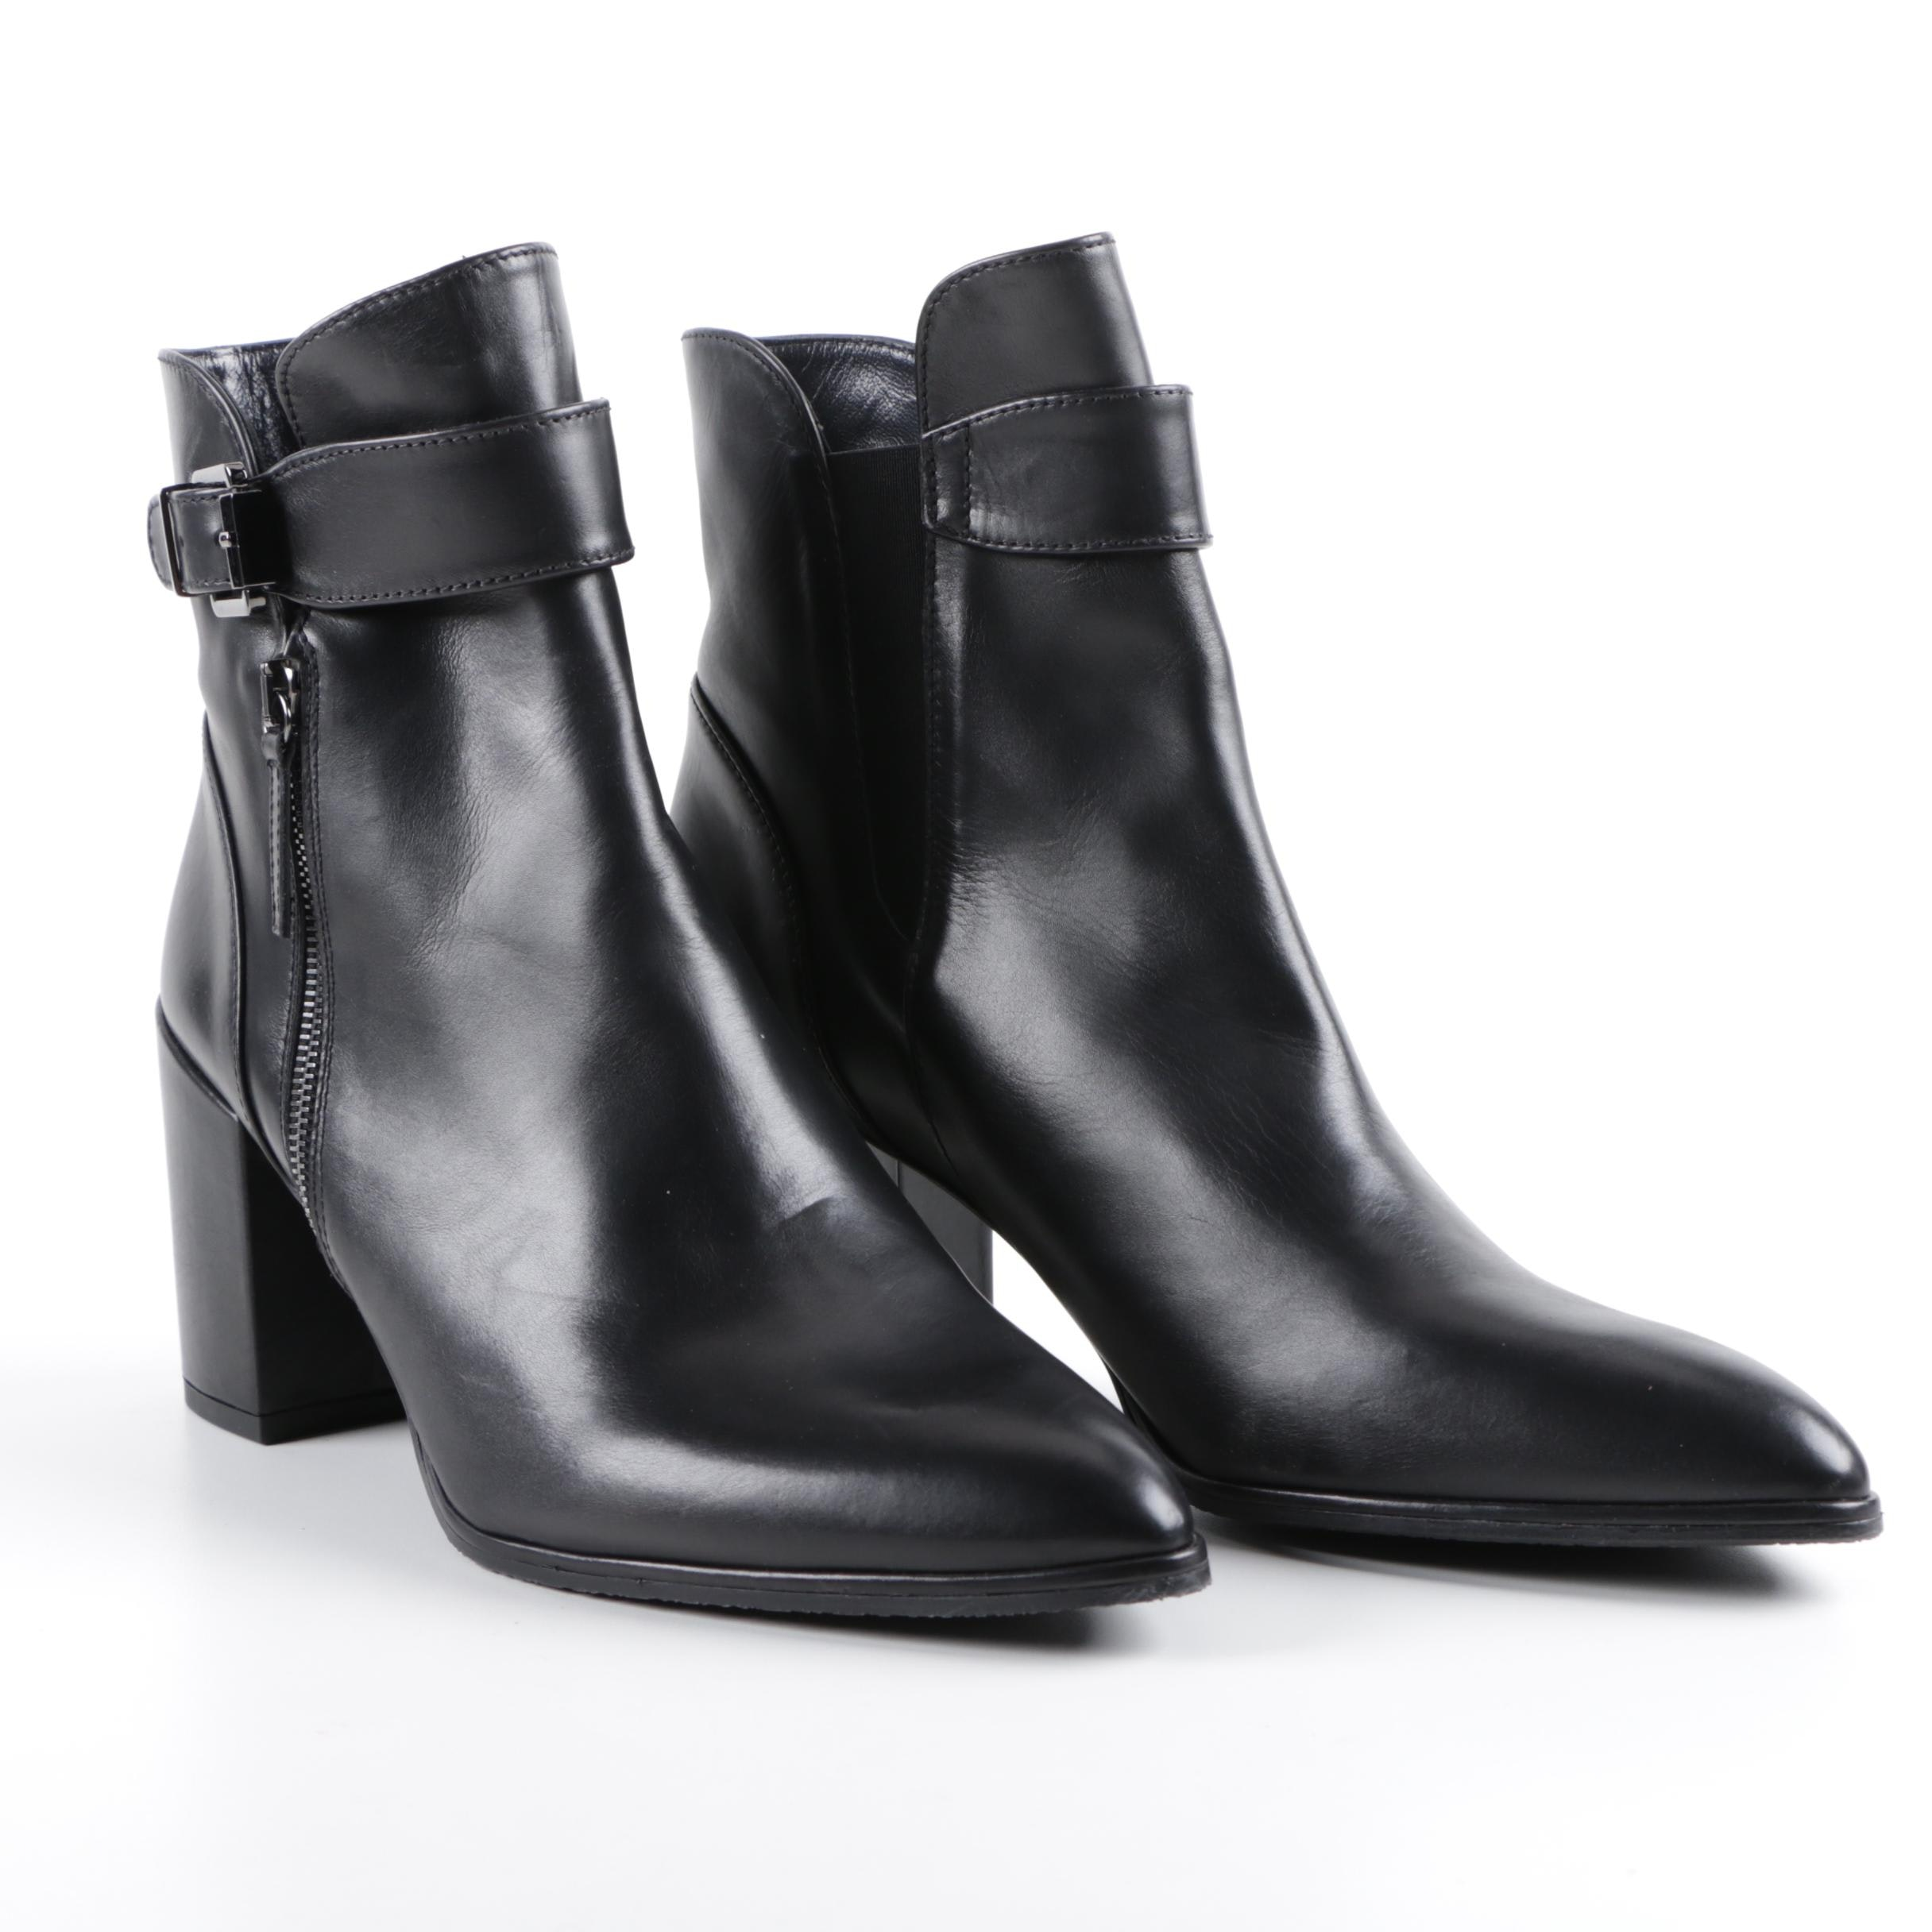 Women's Stuart Weitzman Black Leather Booties